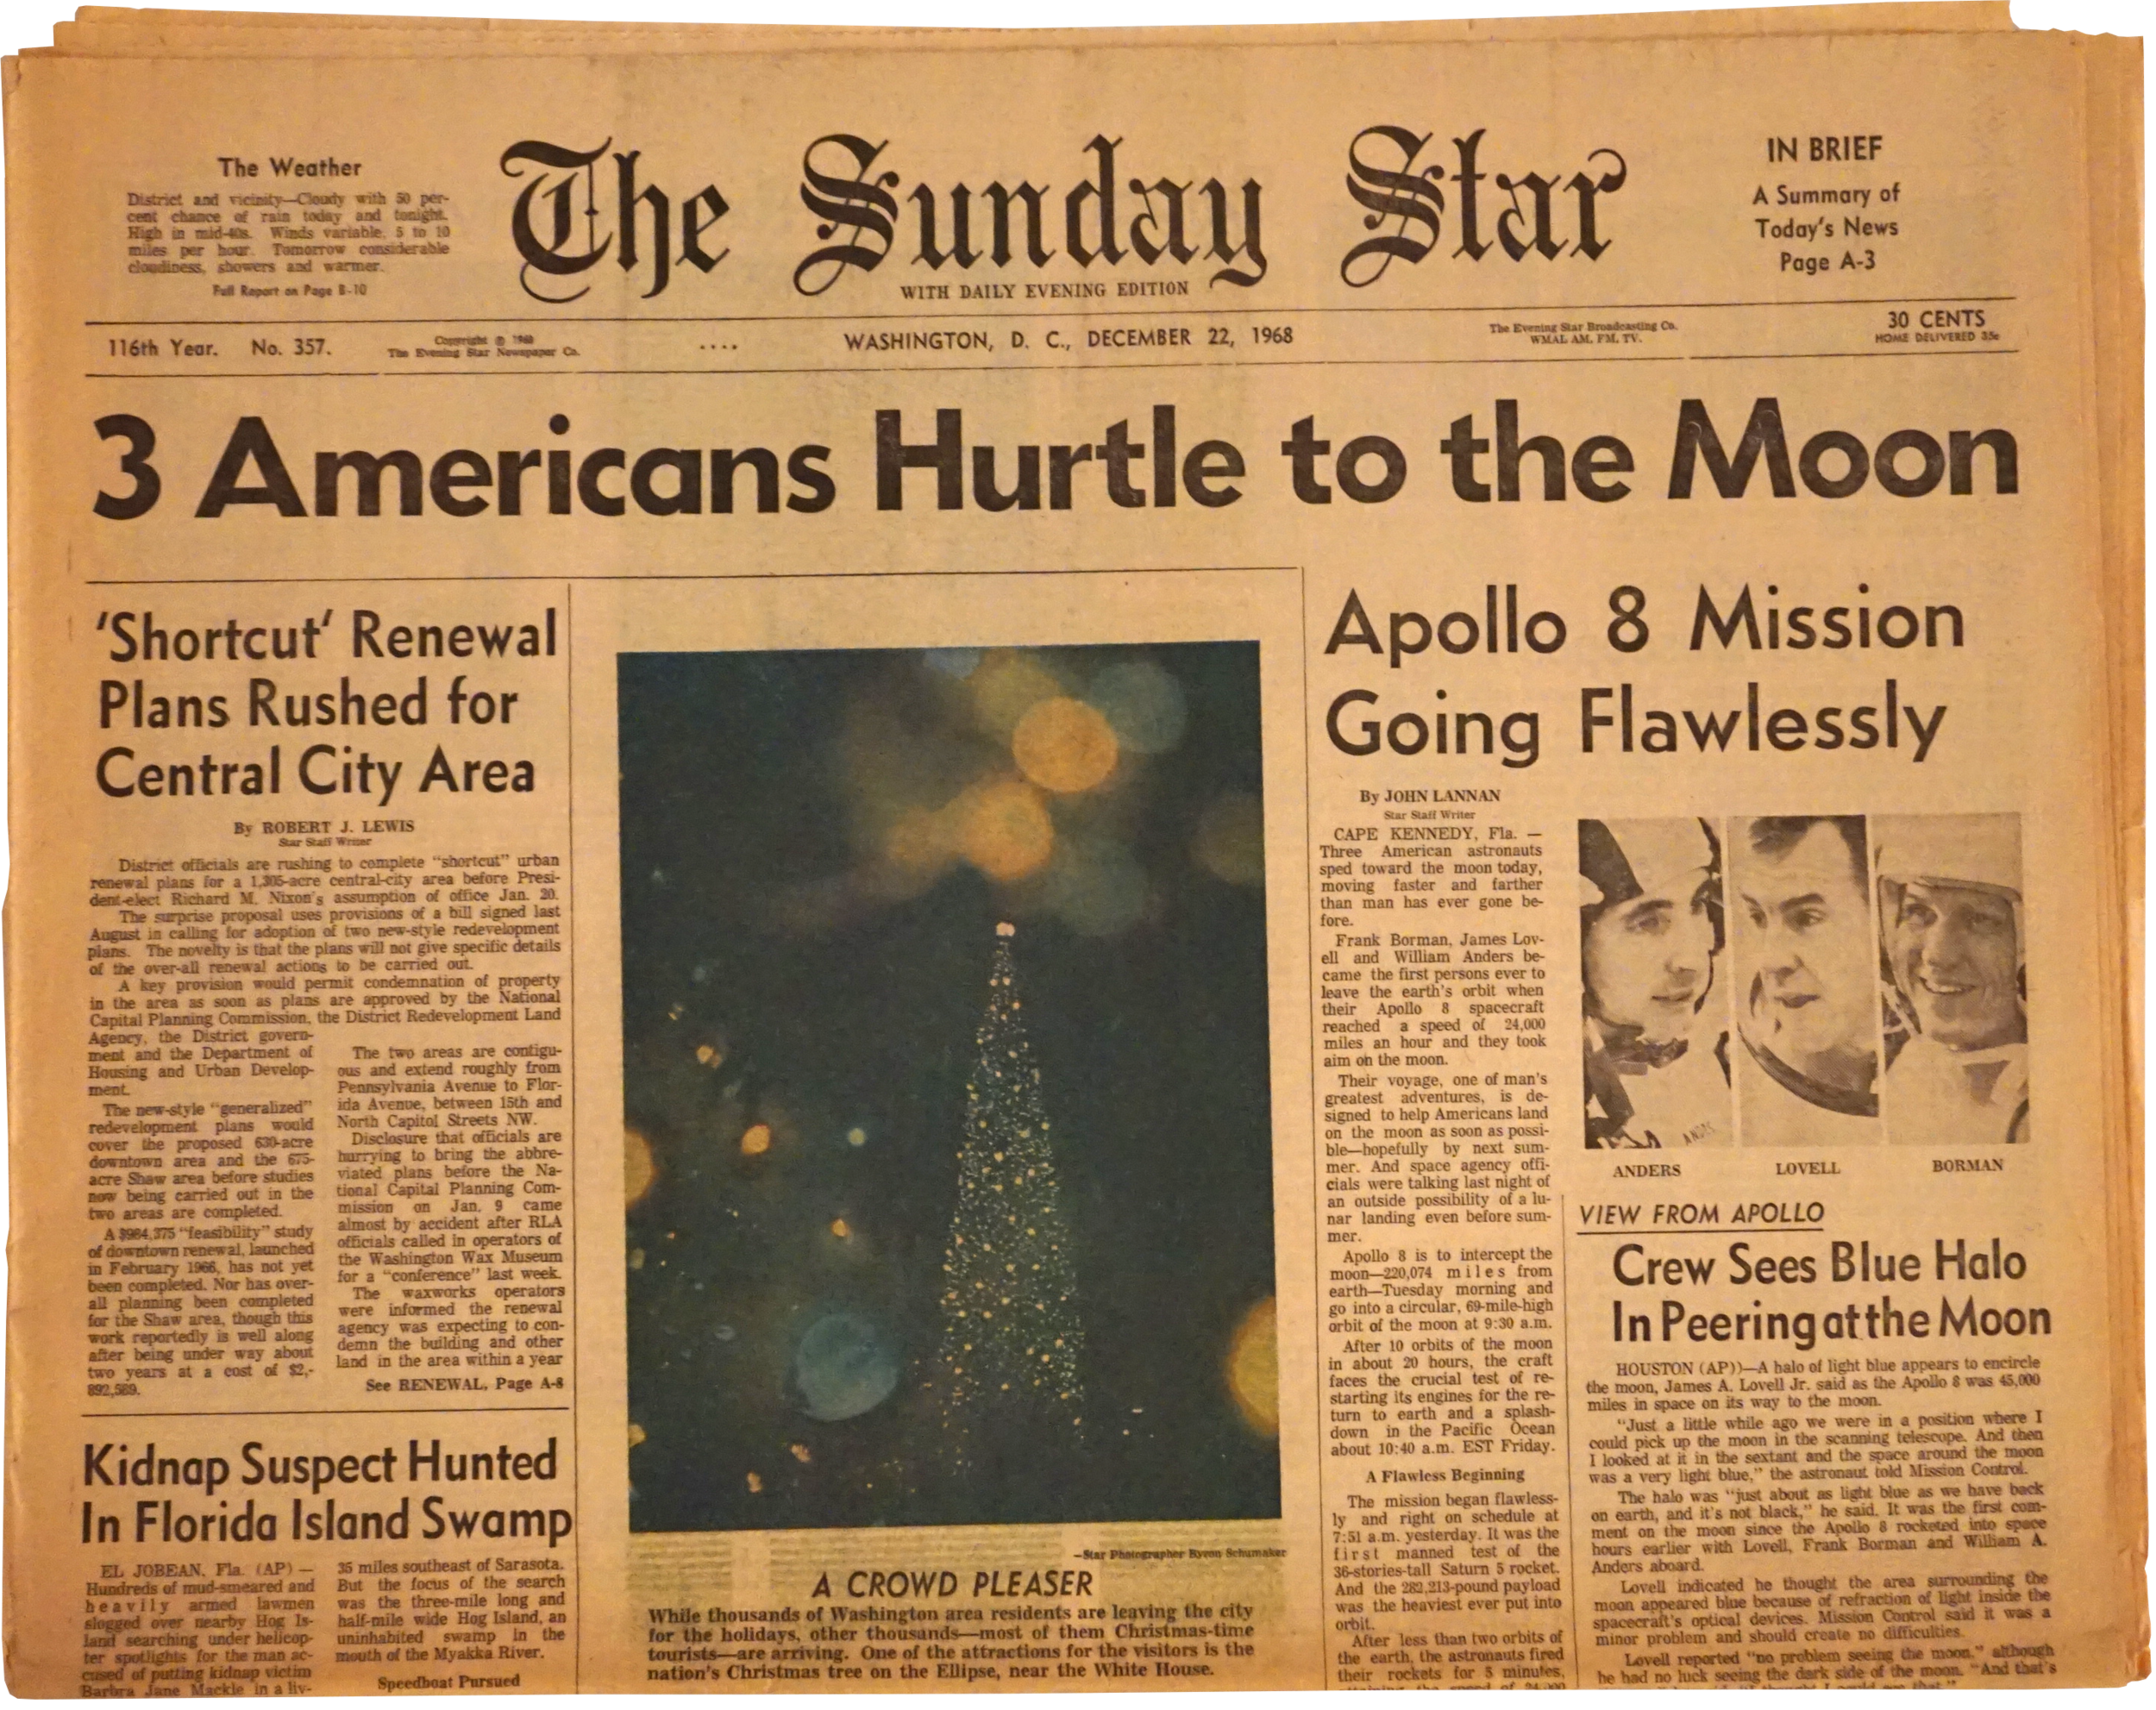 ERM-1968-NEWSPAPER-SUNDAY_STAR-122268.png